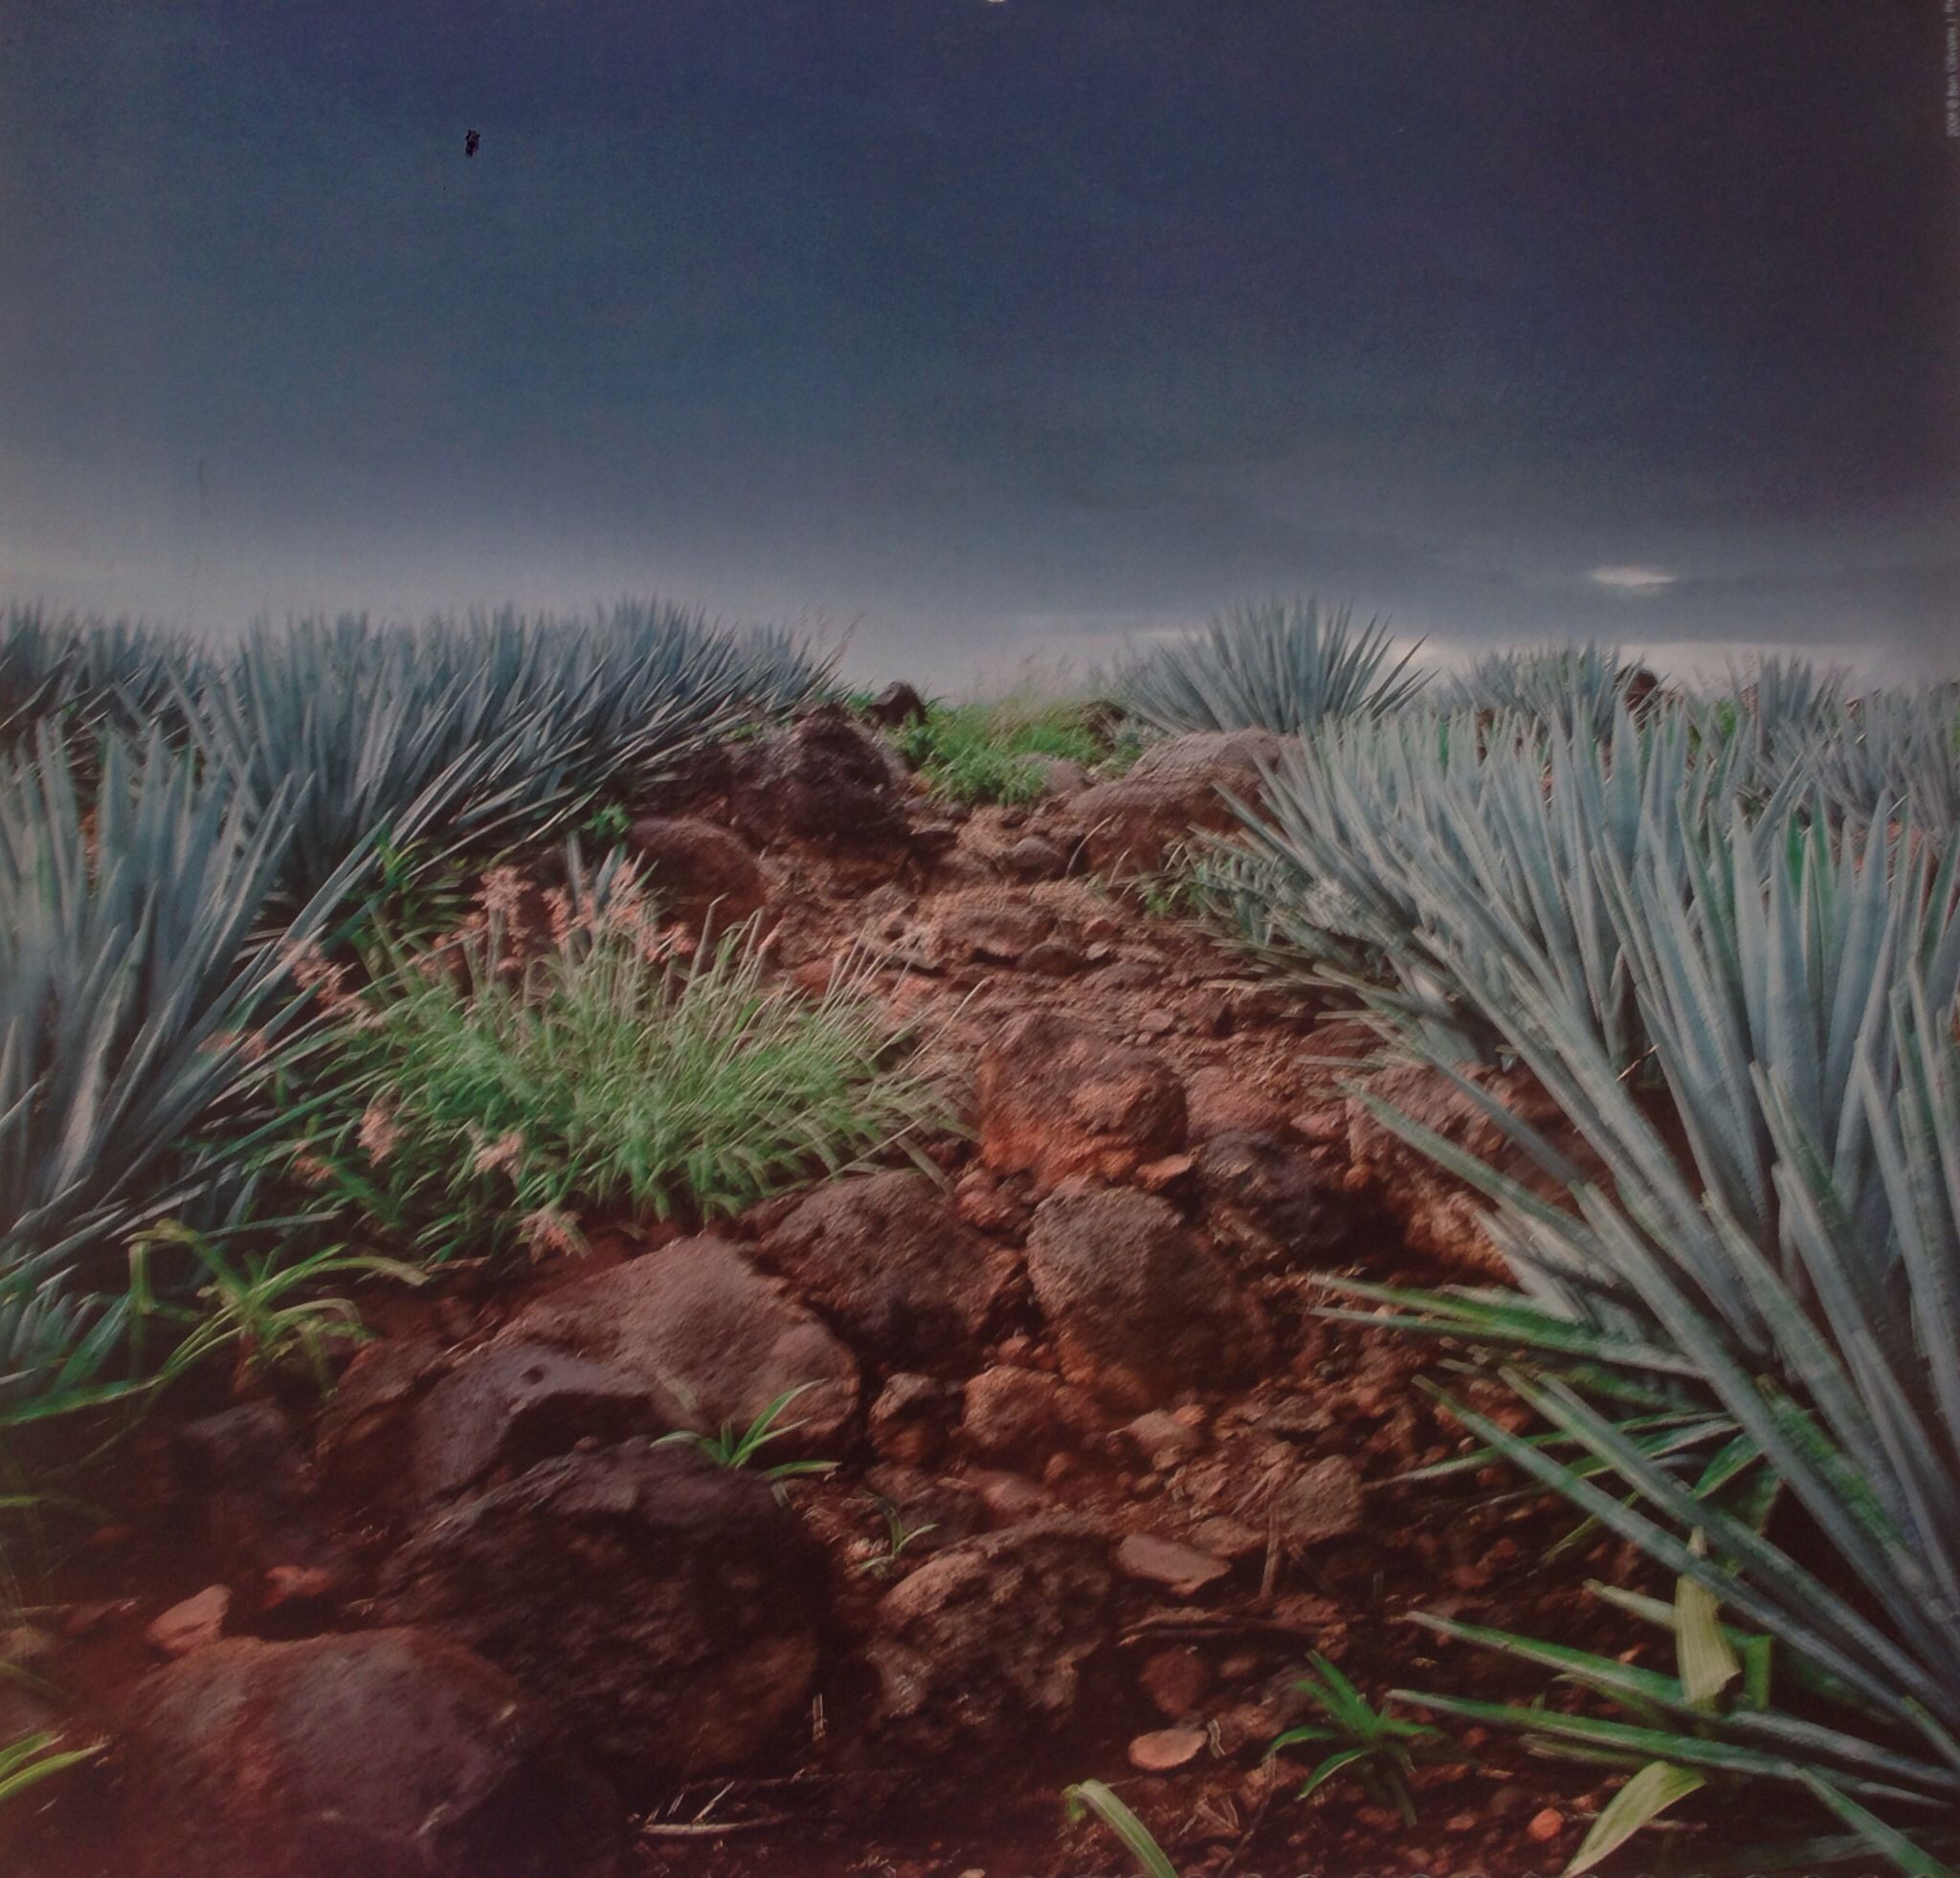 Agave in Tequila, México